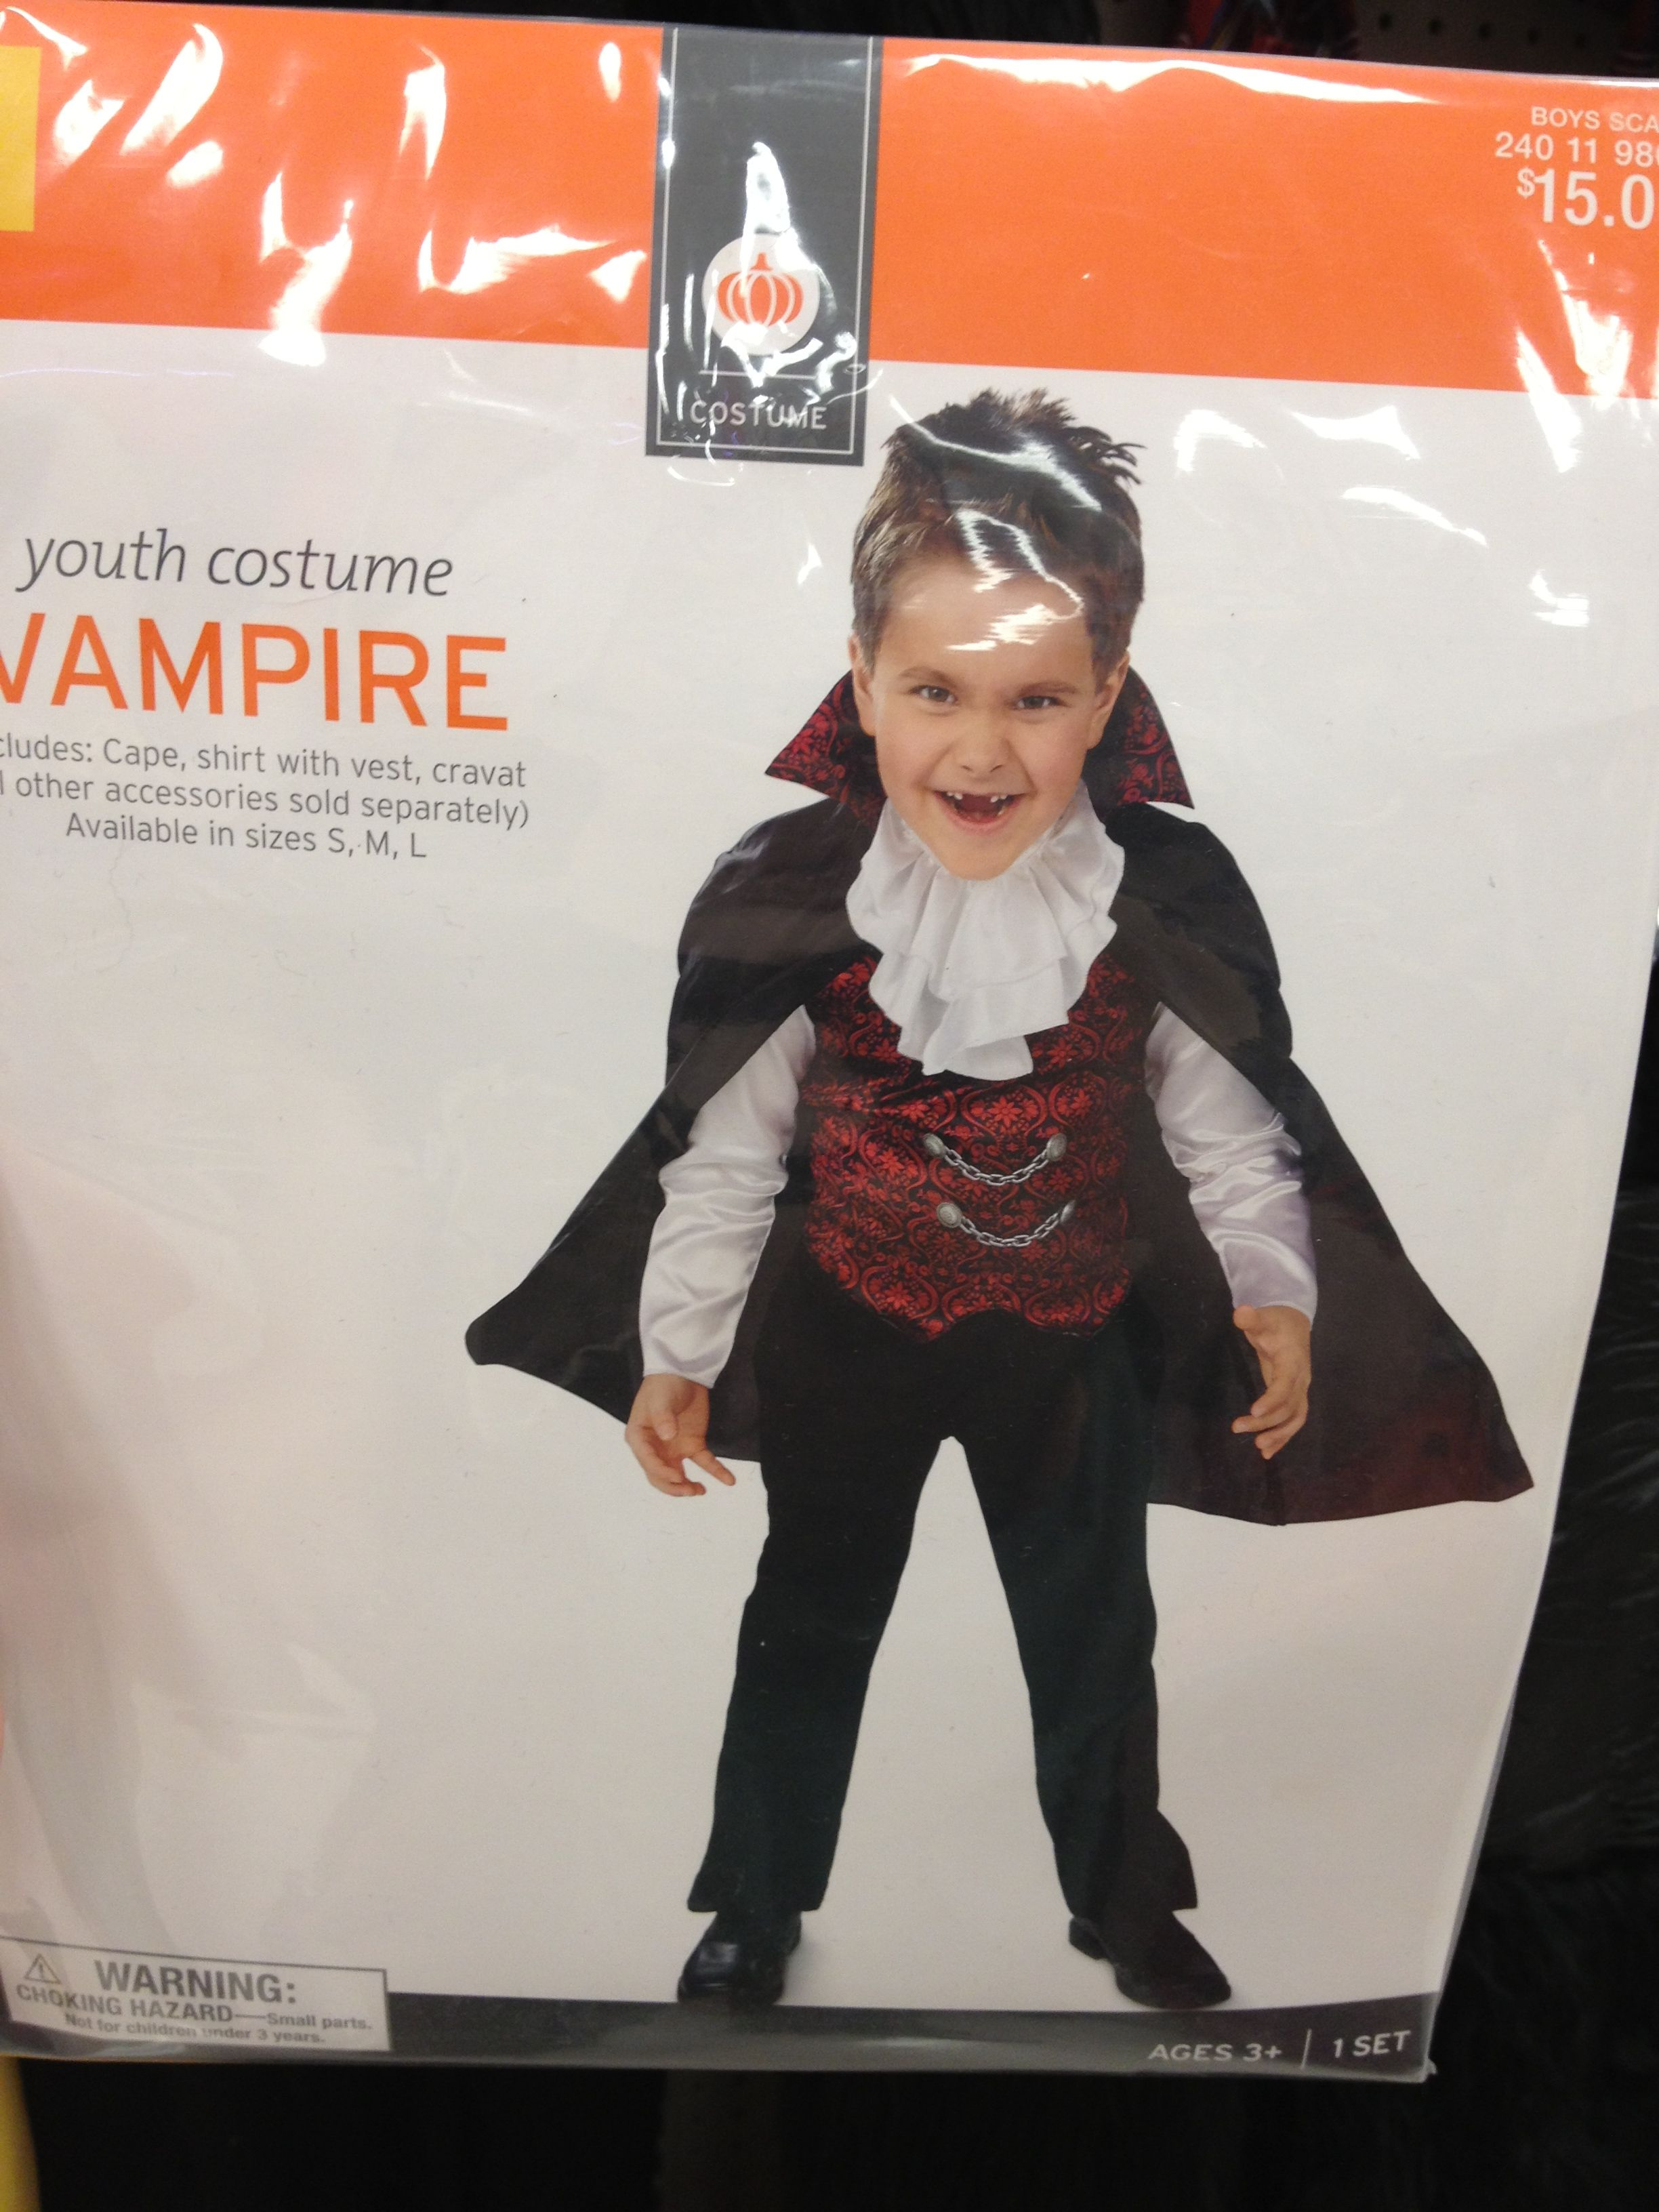 toddler vampire costume for halloween found at target | halloween